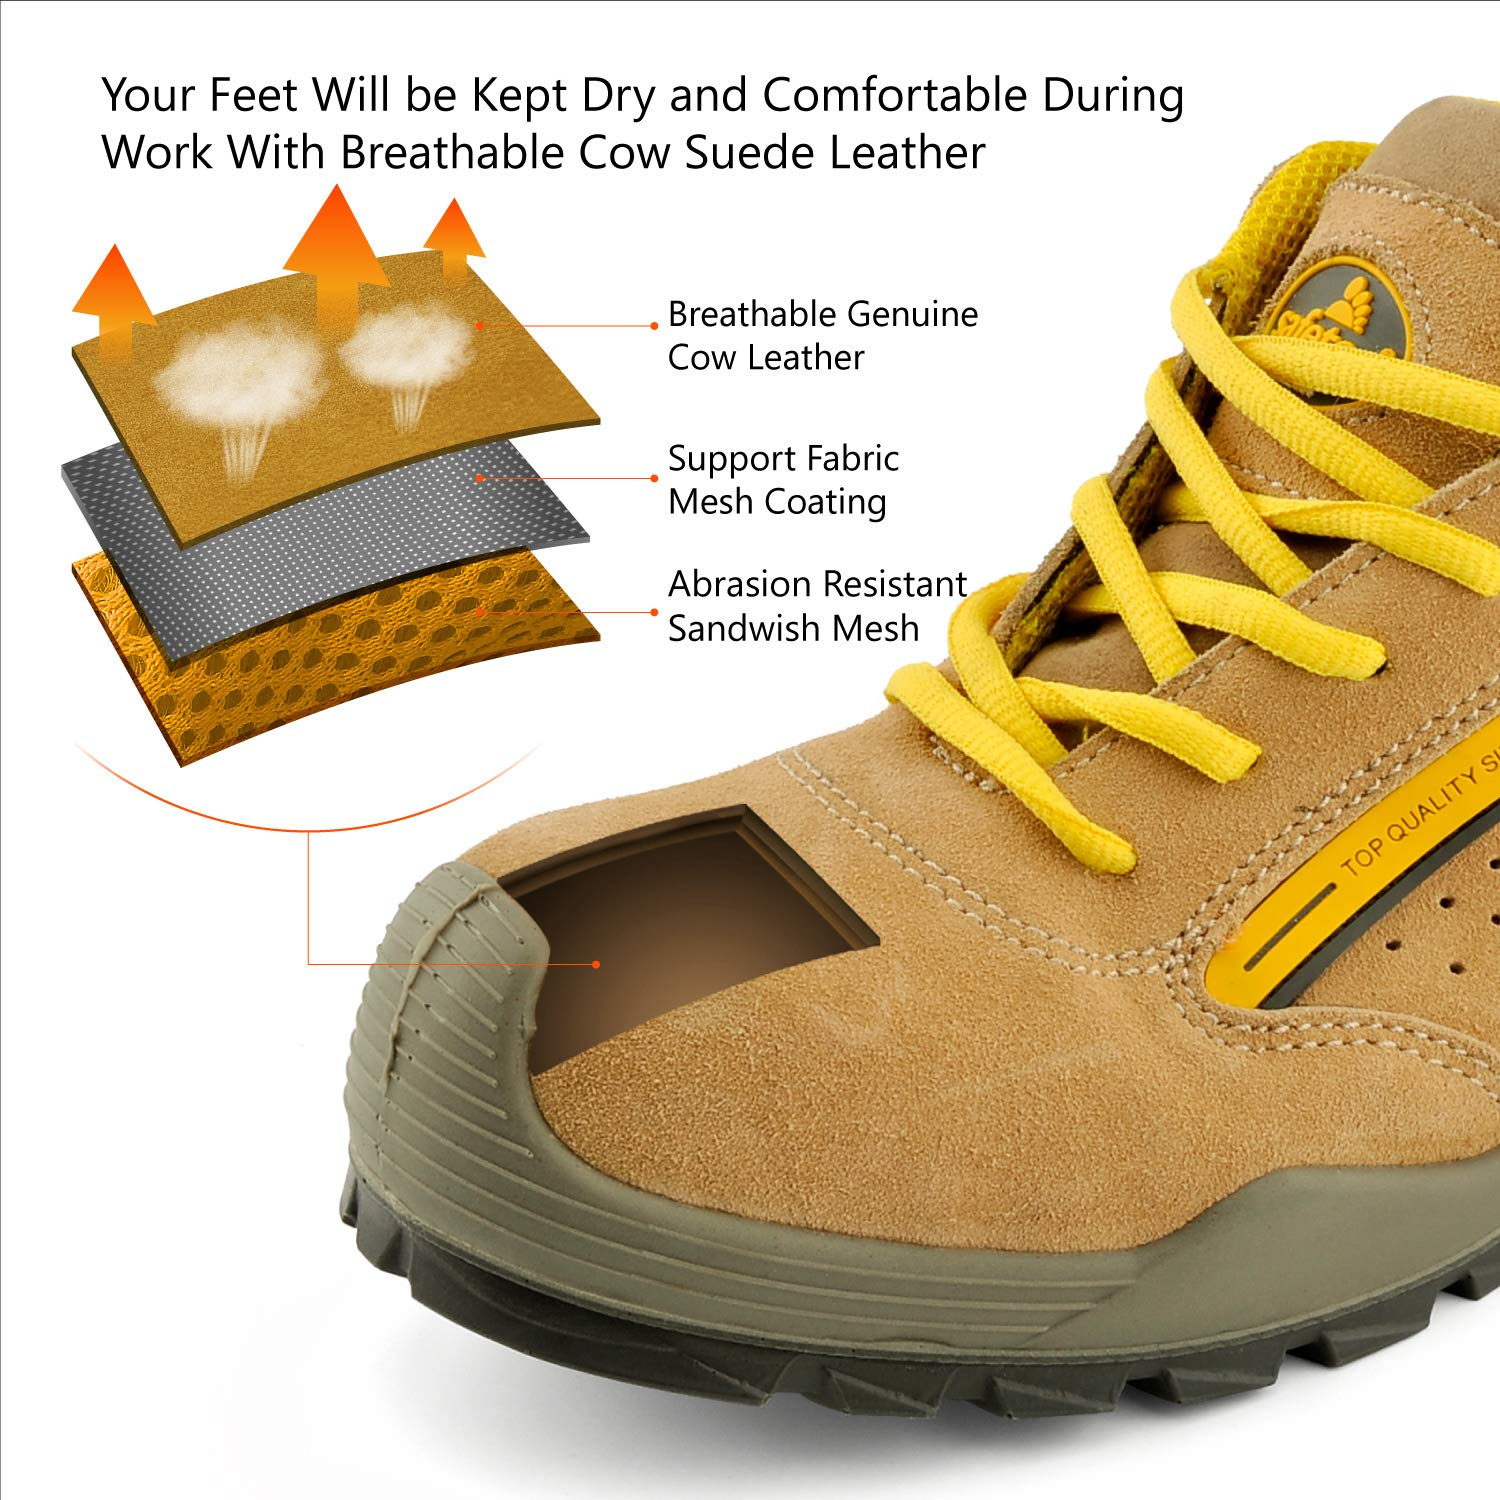 L7296 Leather /& Steel Toe Work Boots for Heavy Duty Work Wide Fit SF7296YE SAFETOE Mens Safety Work Shoes